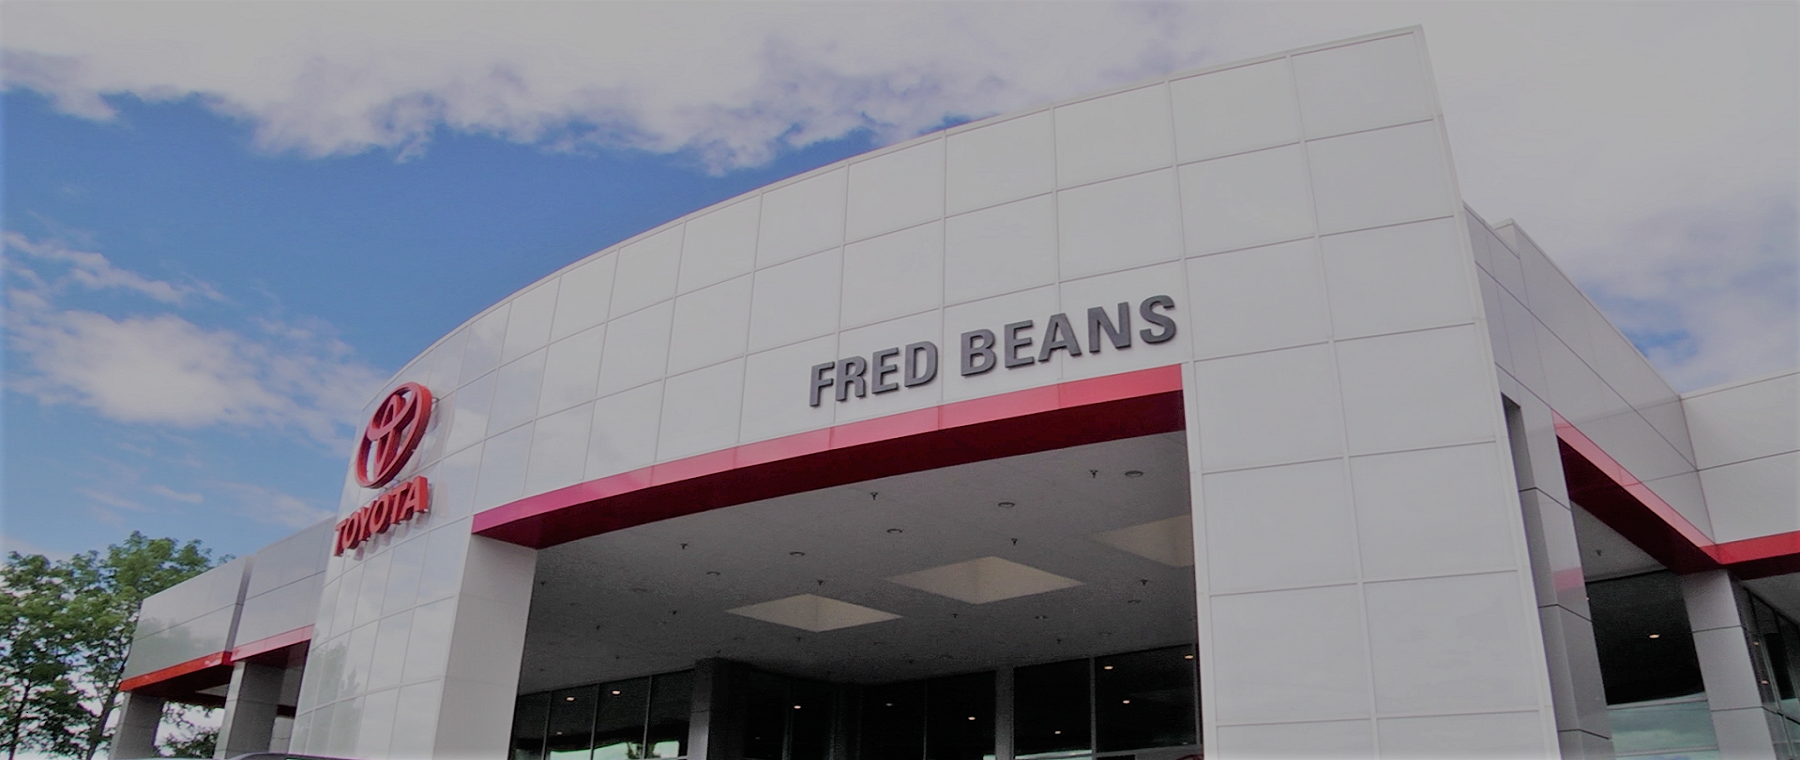 Toyota Dealer Nj >> New Used Toyota Dealer Flemington Nj Fred Beans Toyota